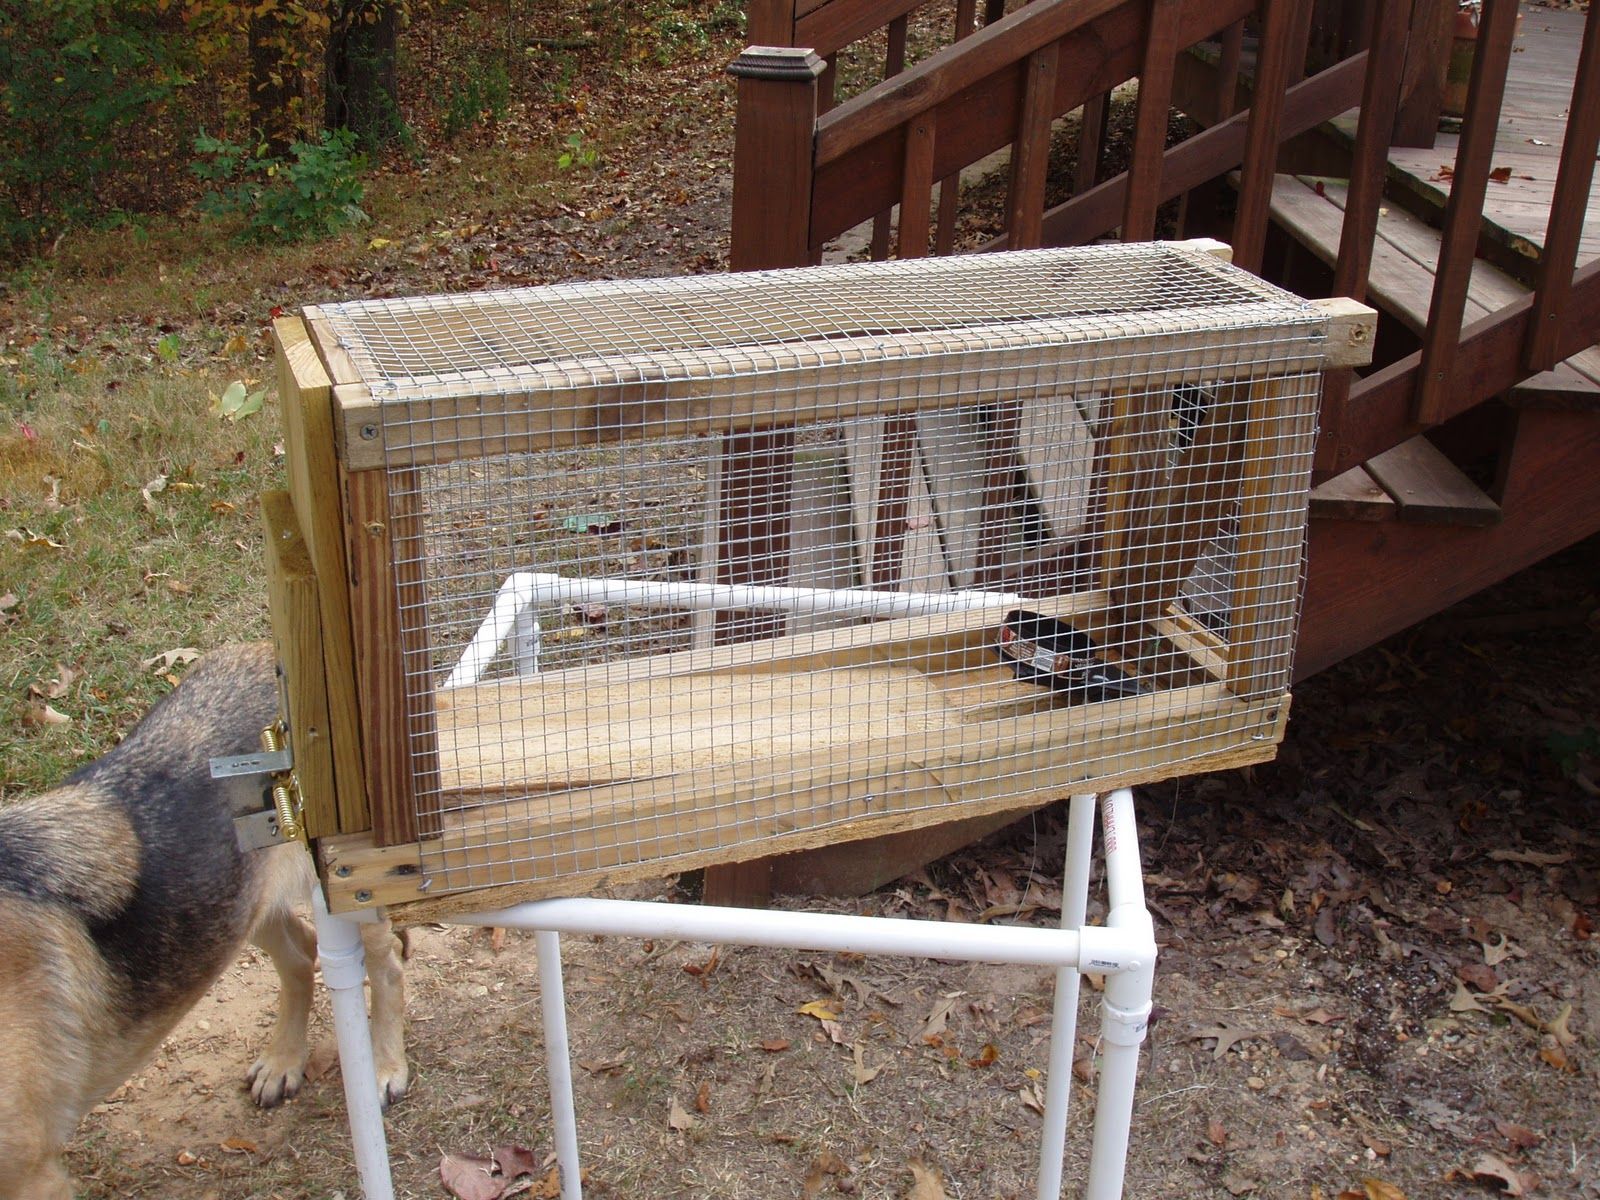 Squirrel Traps Homemade http://www.infinitopromo.com.br/newsletter/homemade-squirrel-trap